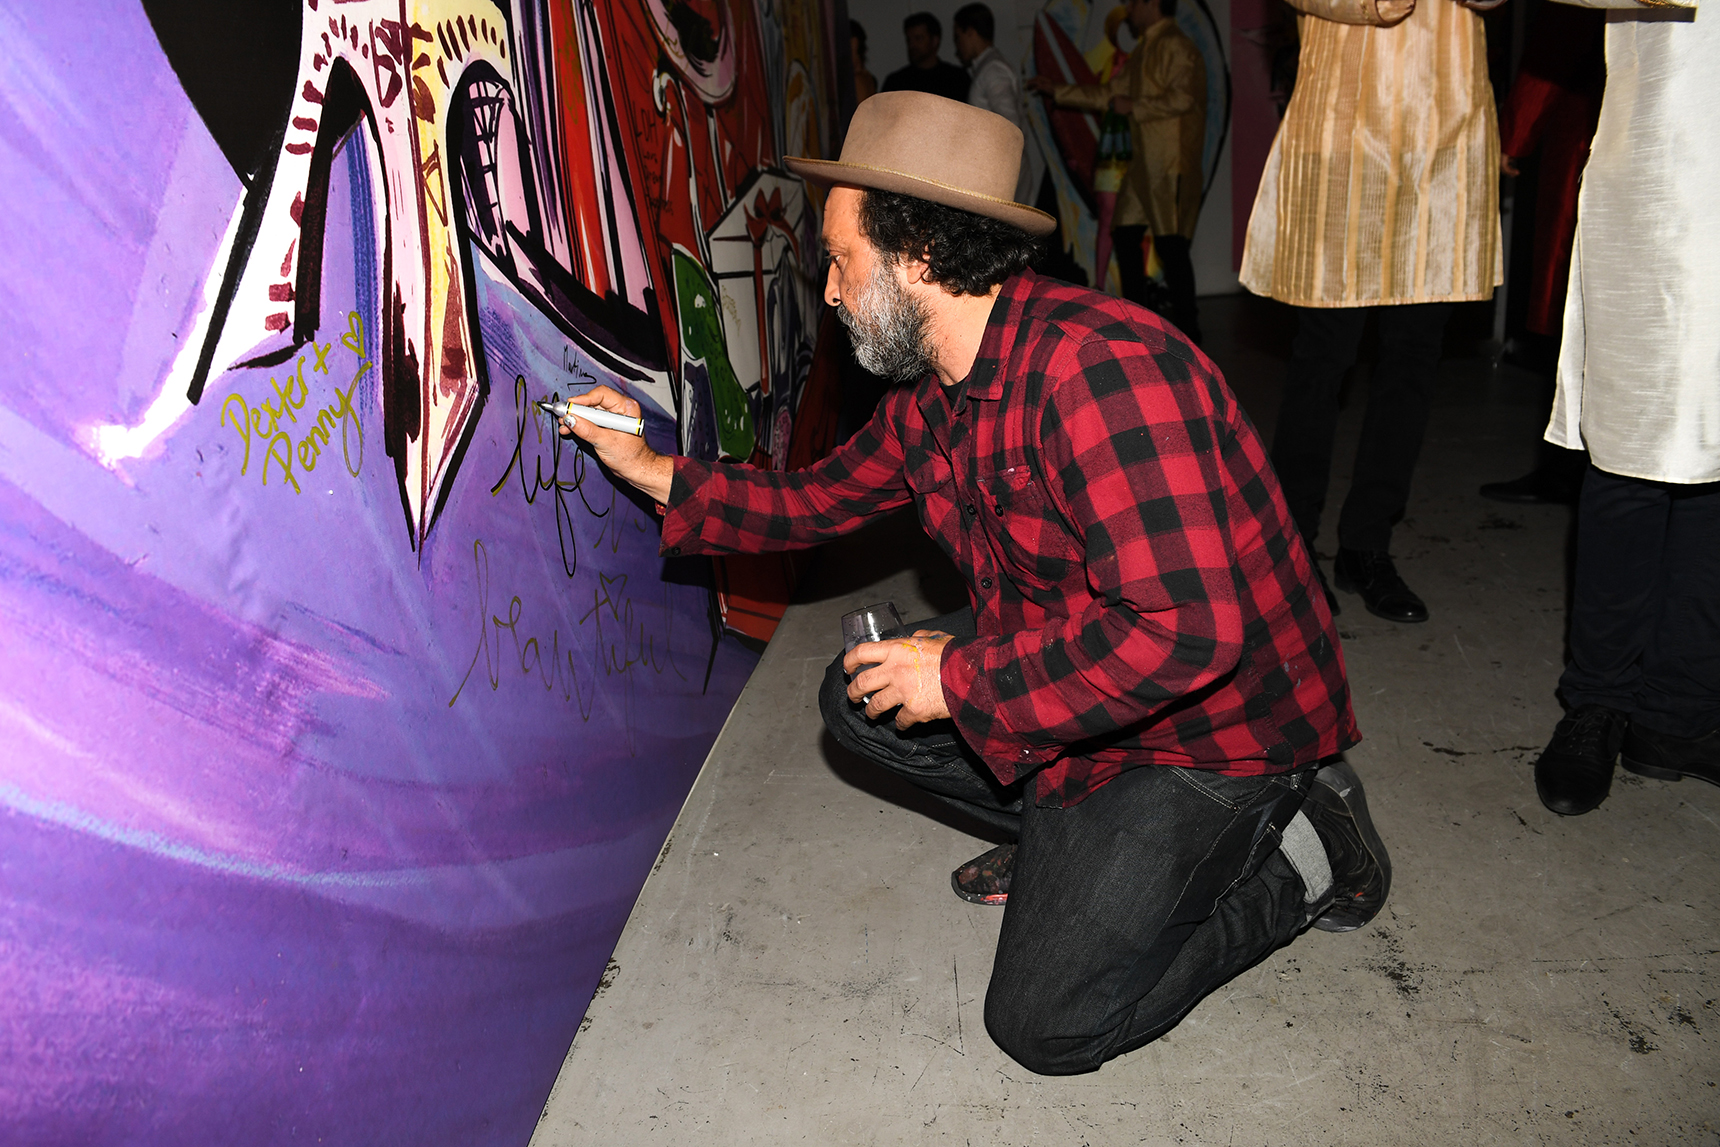 Thierry Guetta (aka Mr. Brainwash)